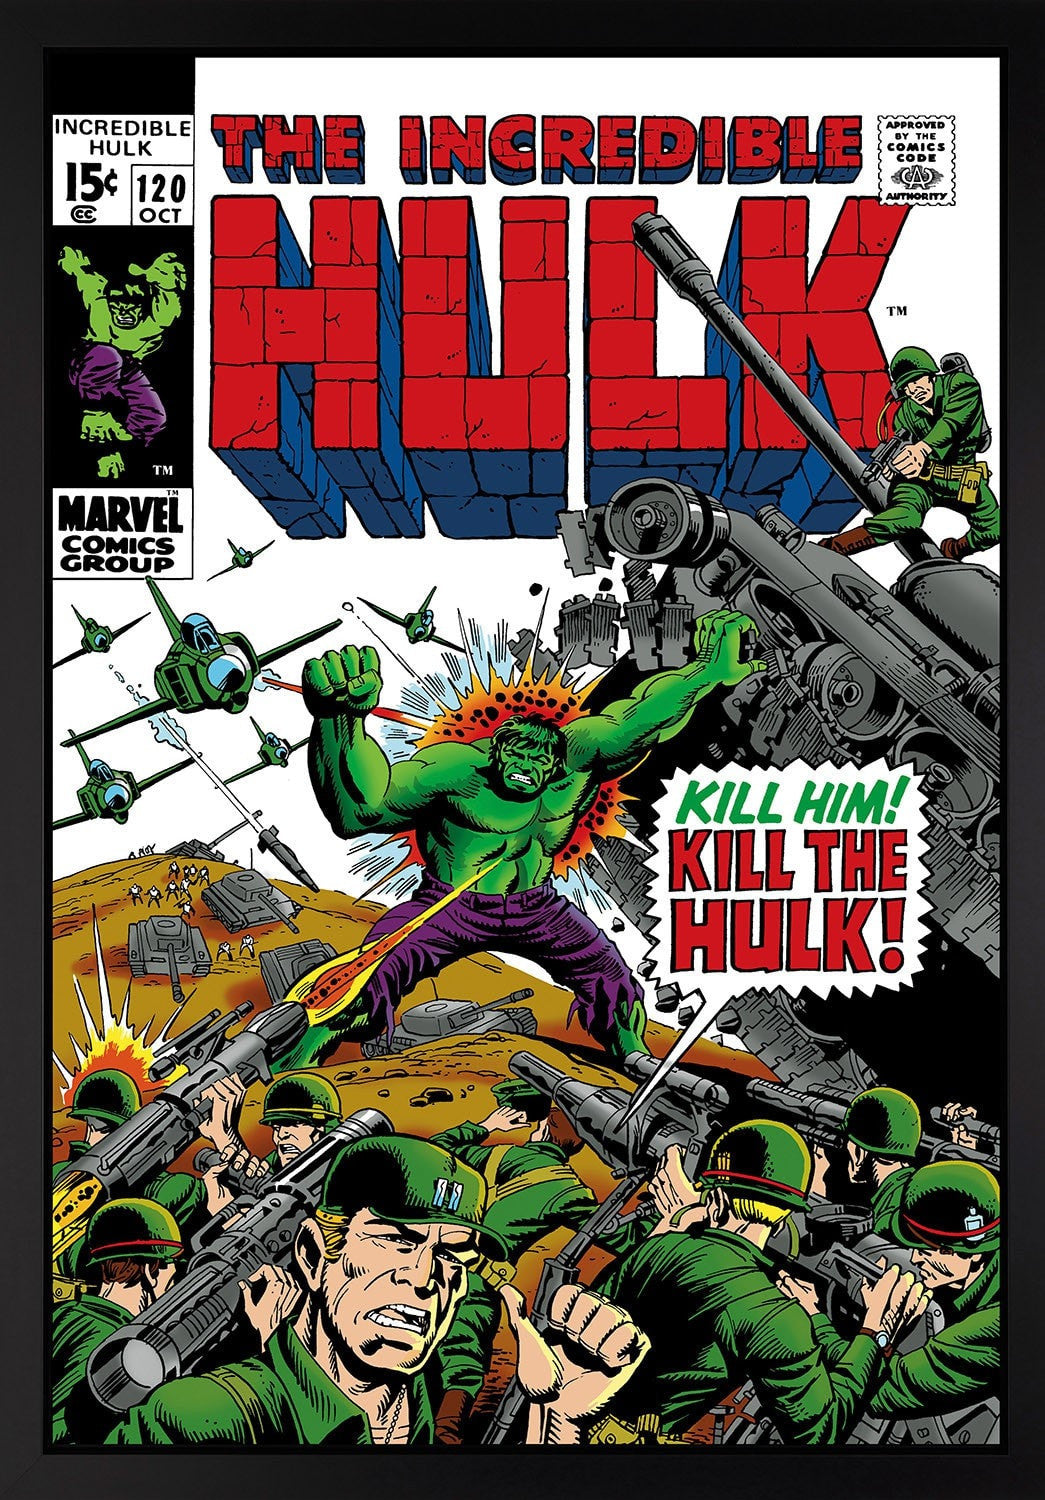 The Incredible Hulk #120 - Kill The Hulk! Stan Lee